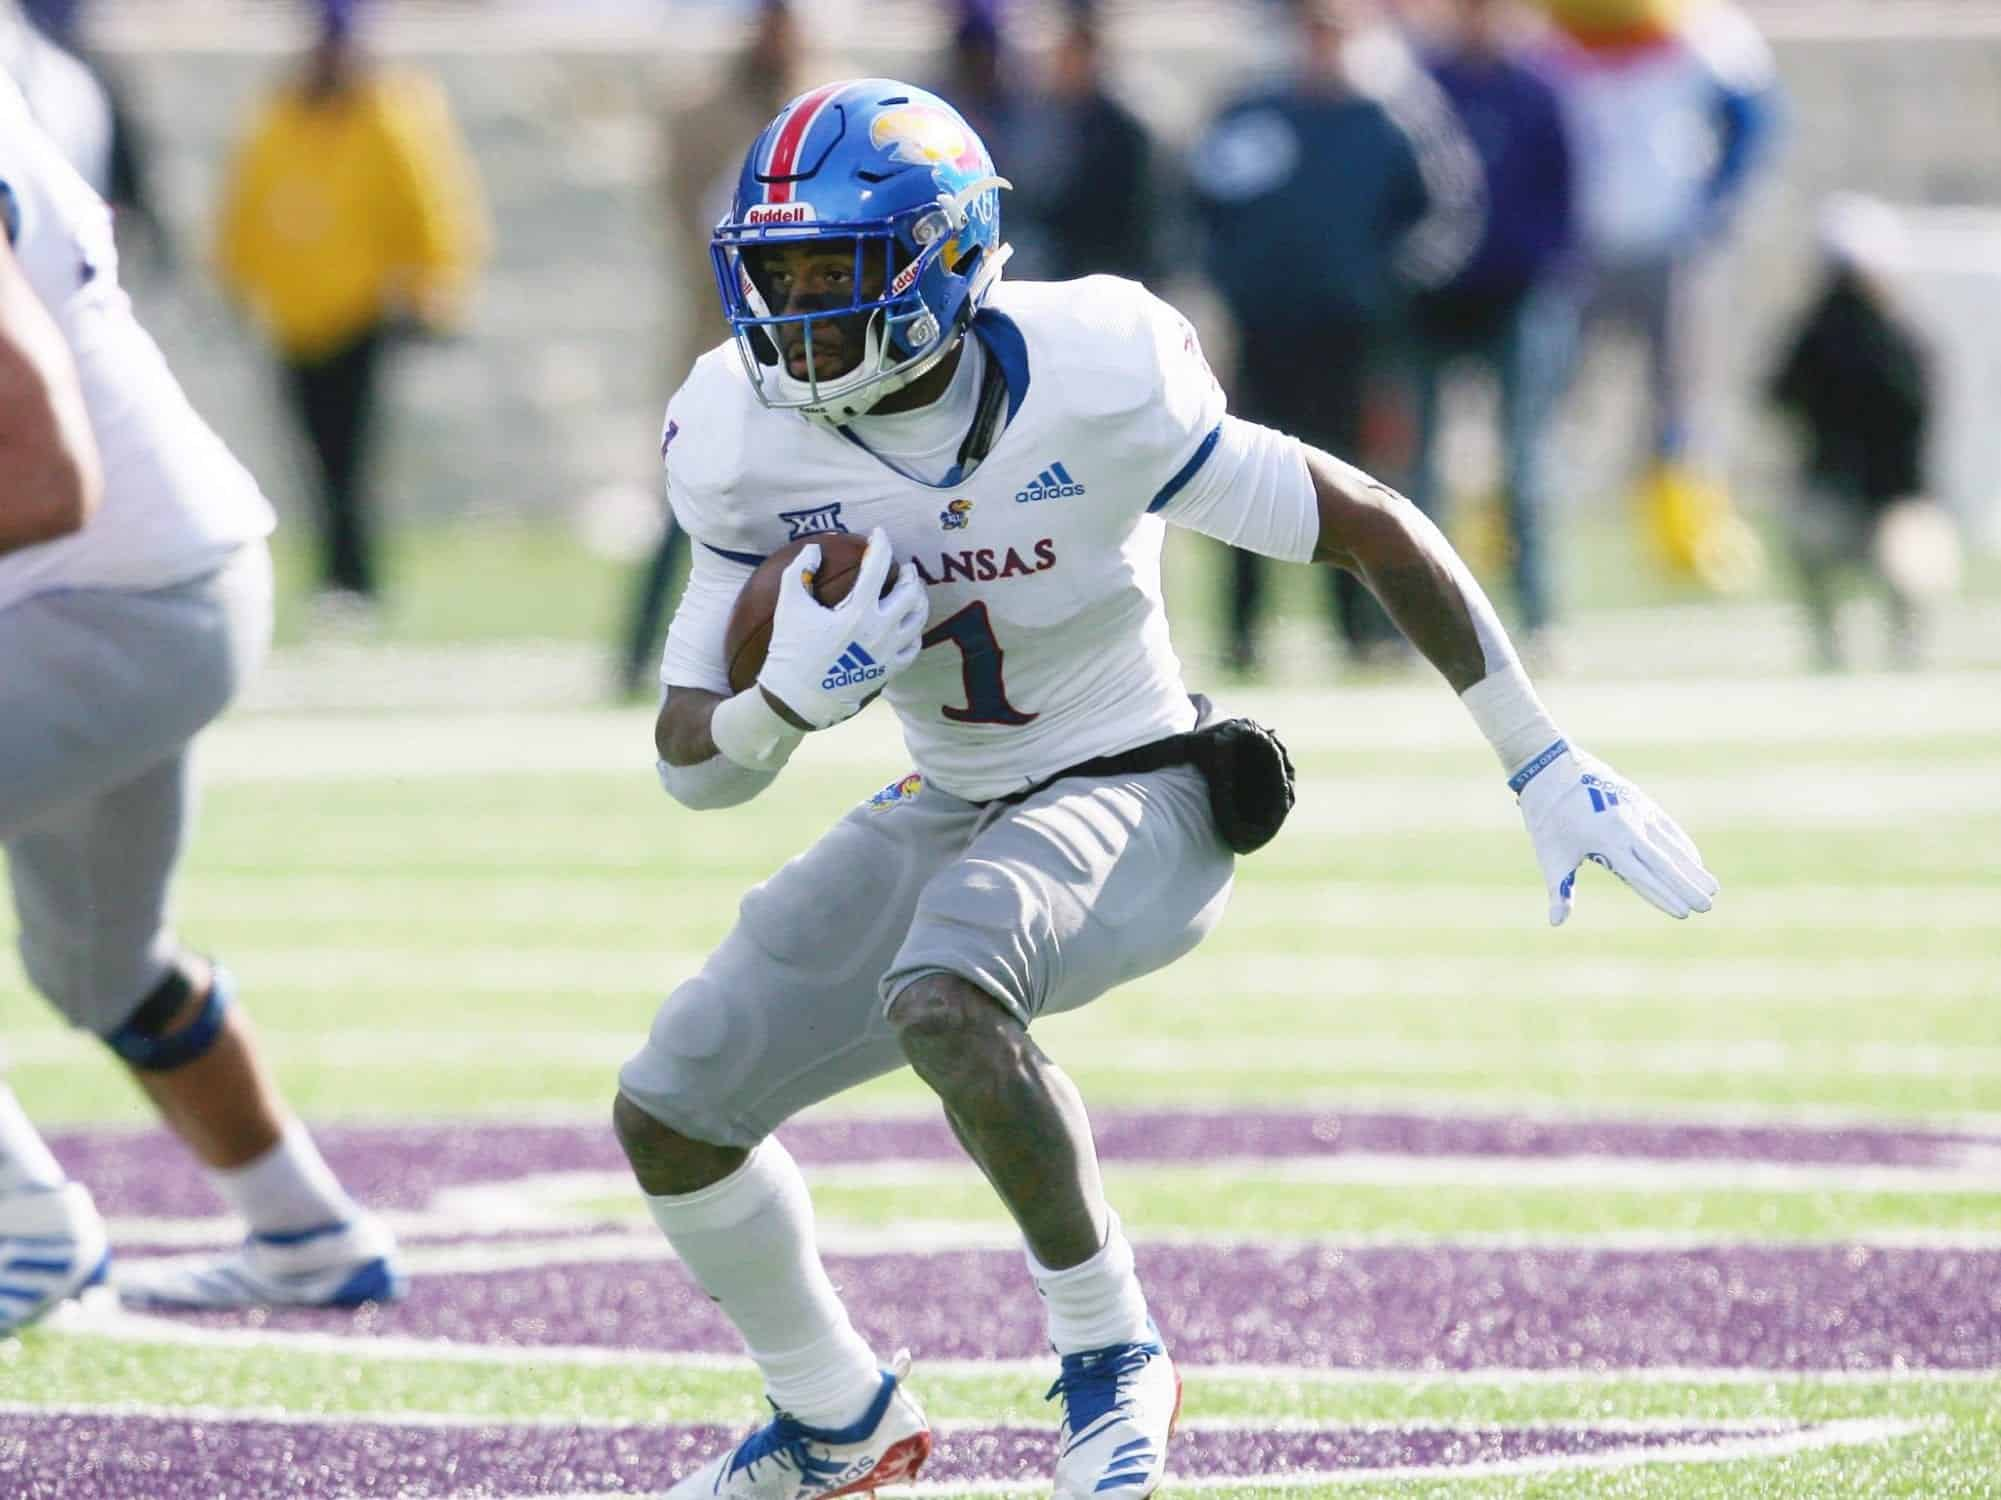 2021 NFL Draft: Kansas Running Back Pooka Williams is a top sleeper